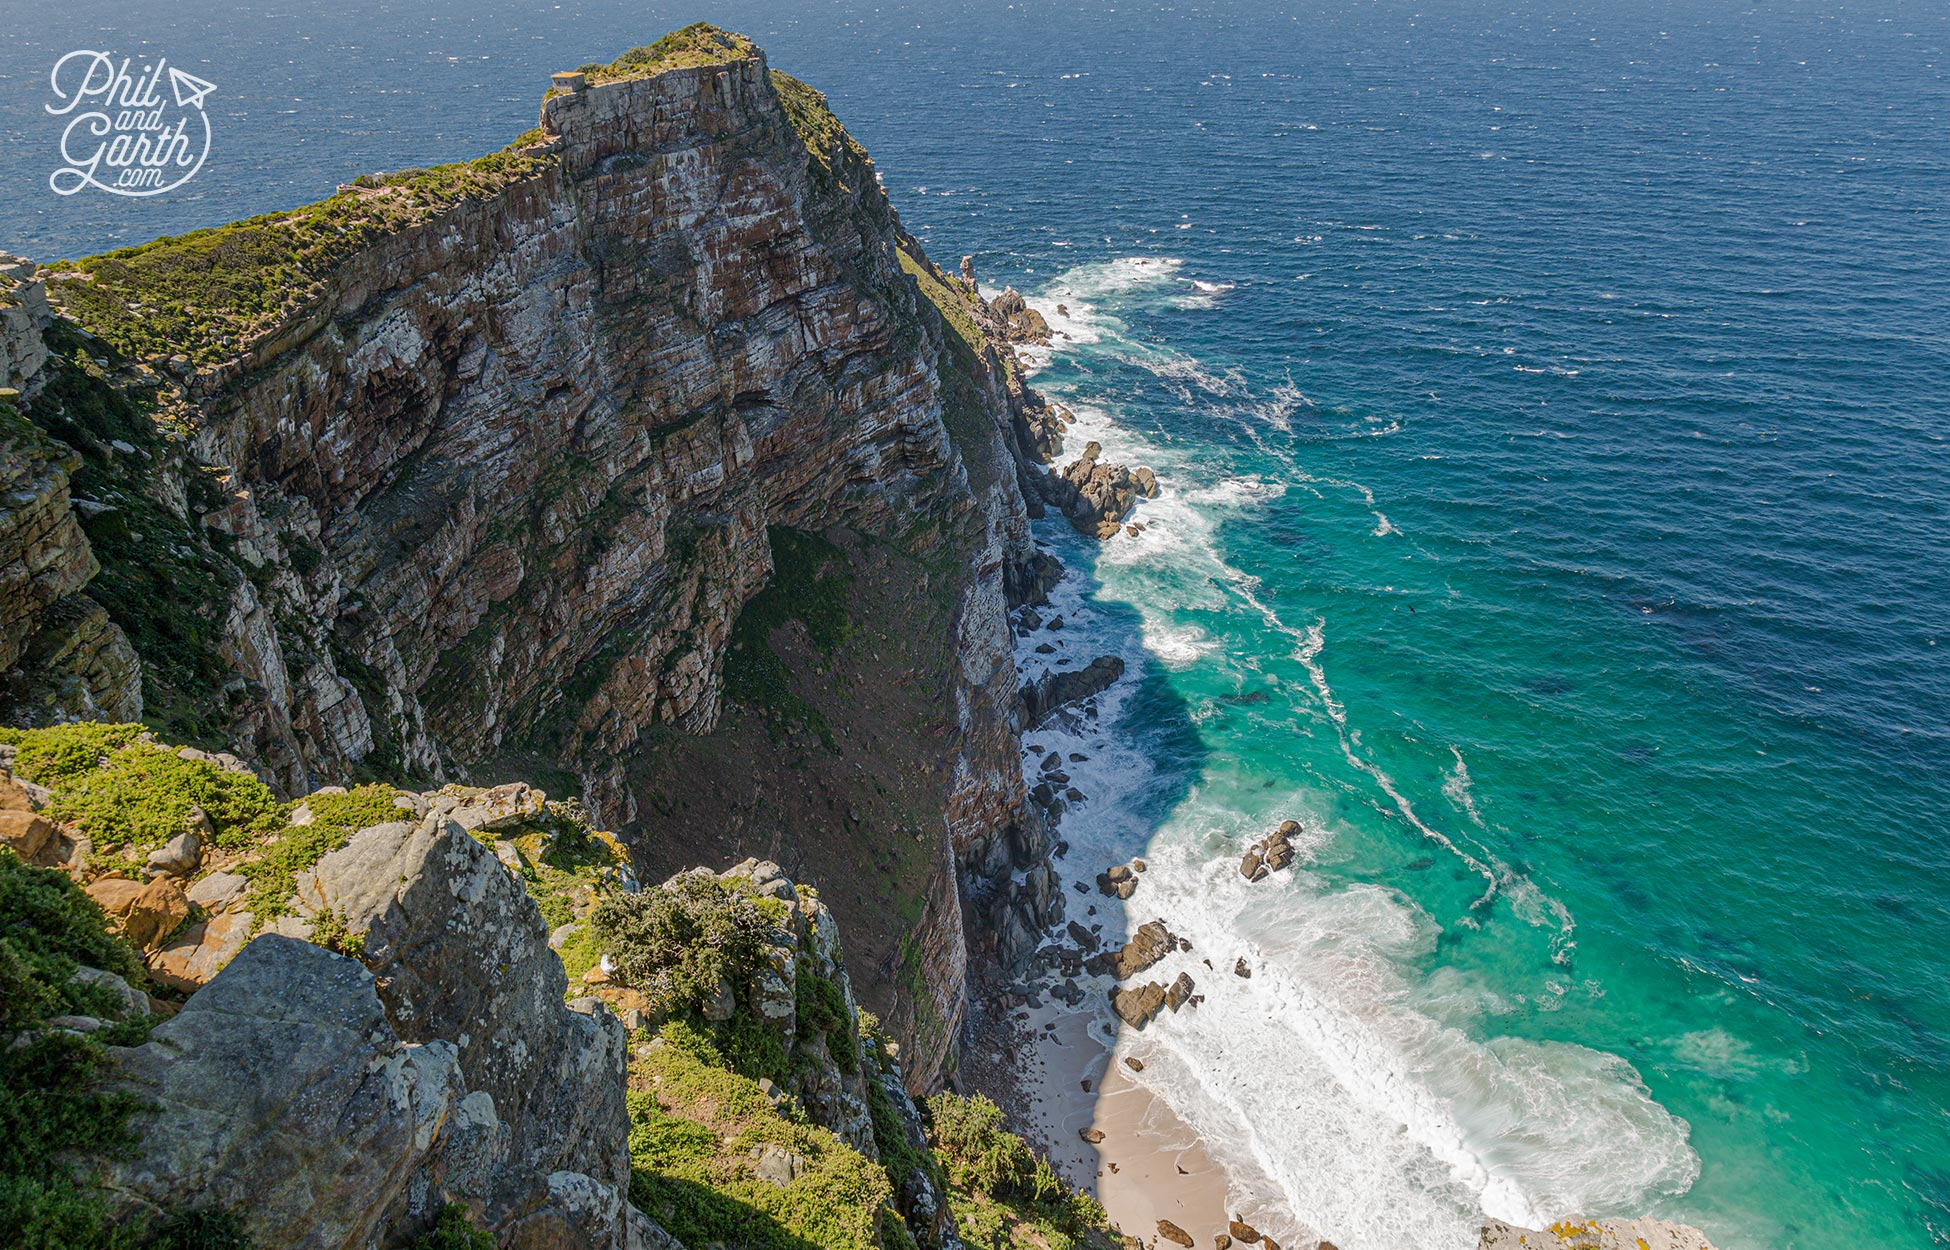 Looking down on the rugged beauty of Cape Point